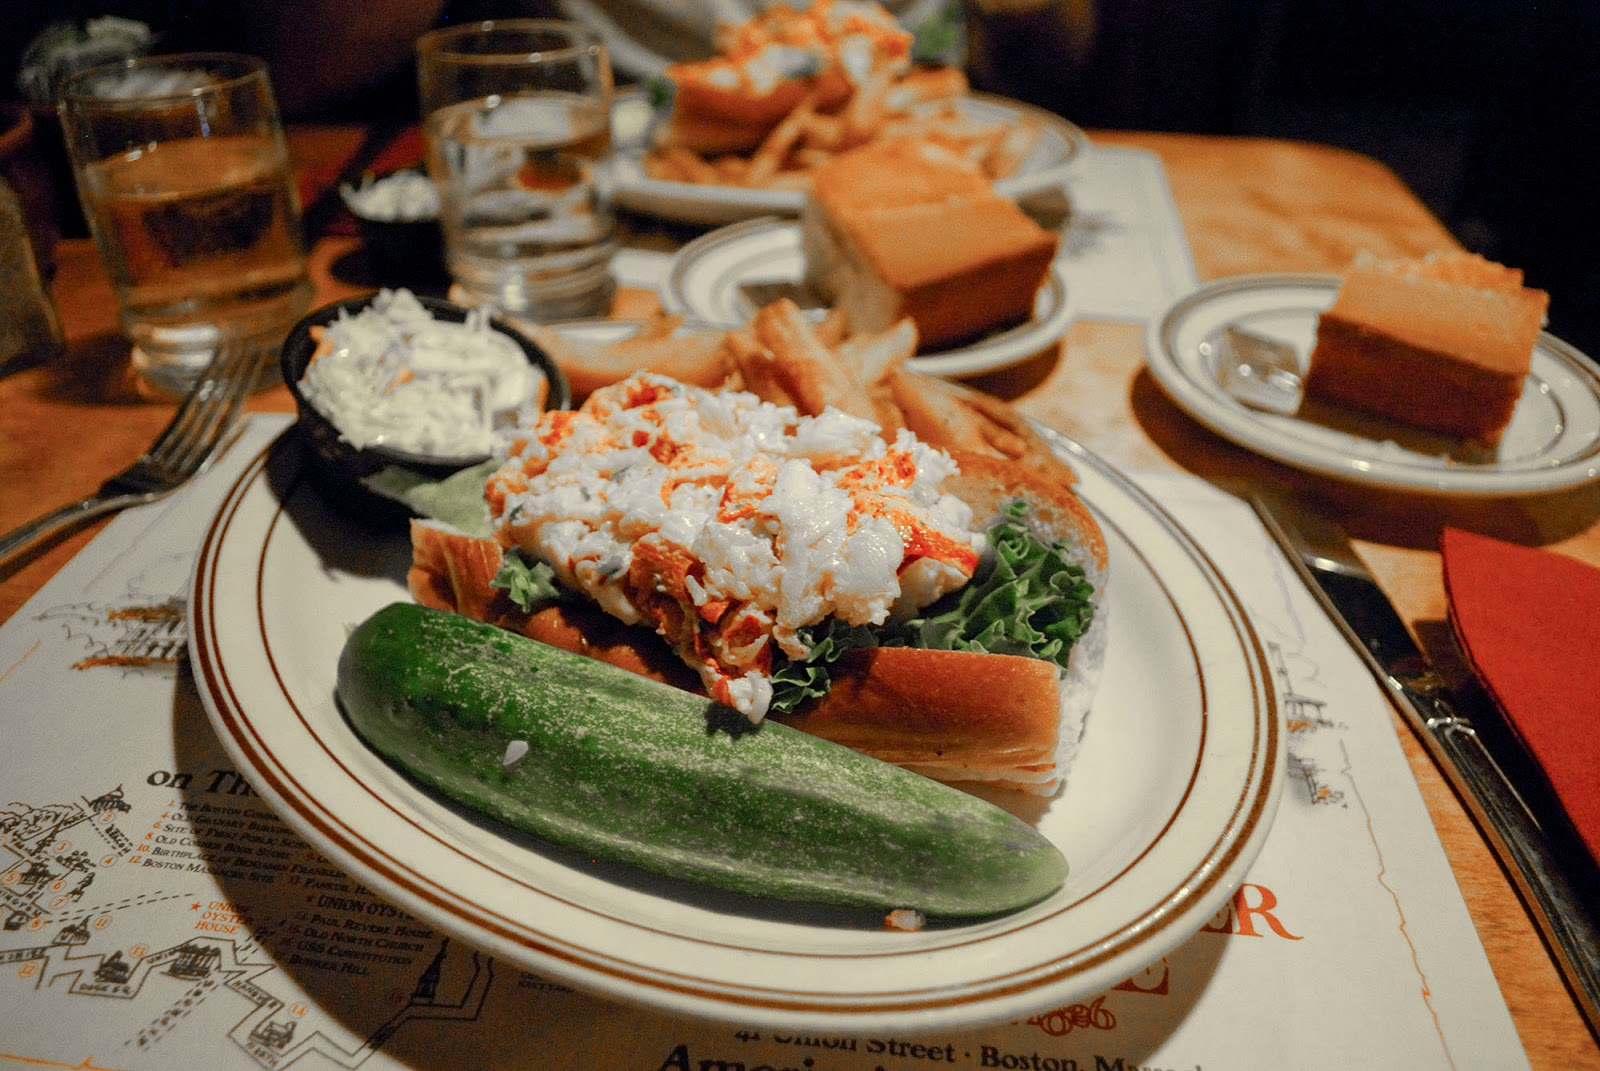 union oyster house lobster roll seafood landmark freedom trail boston itinerary plan guide tourism usa america park east coast